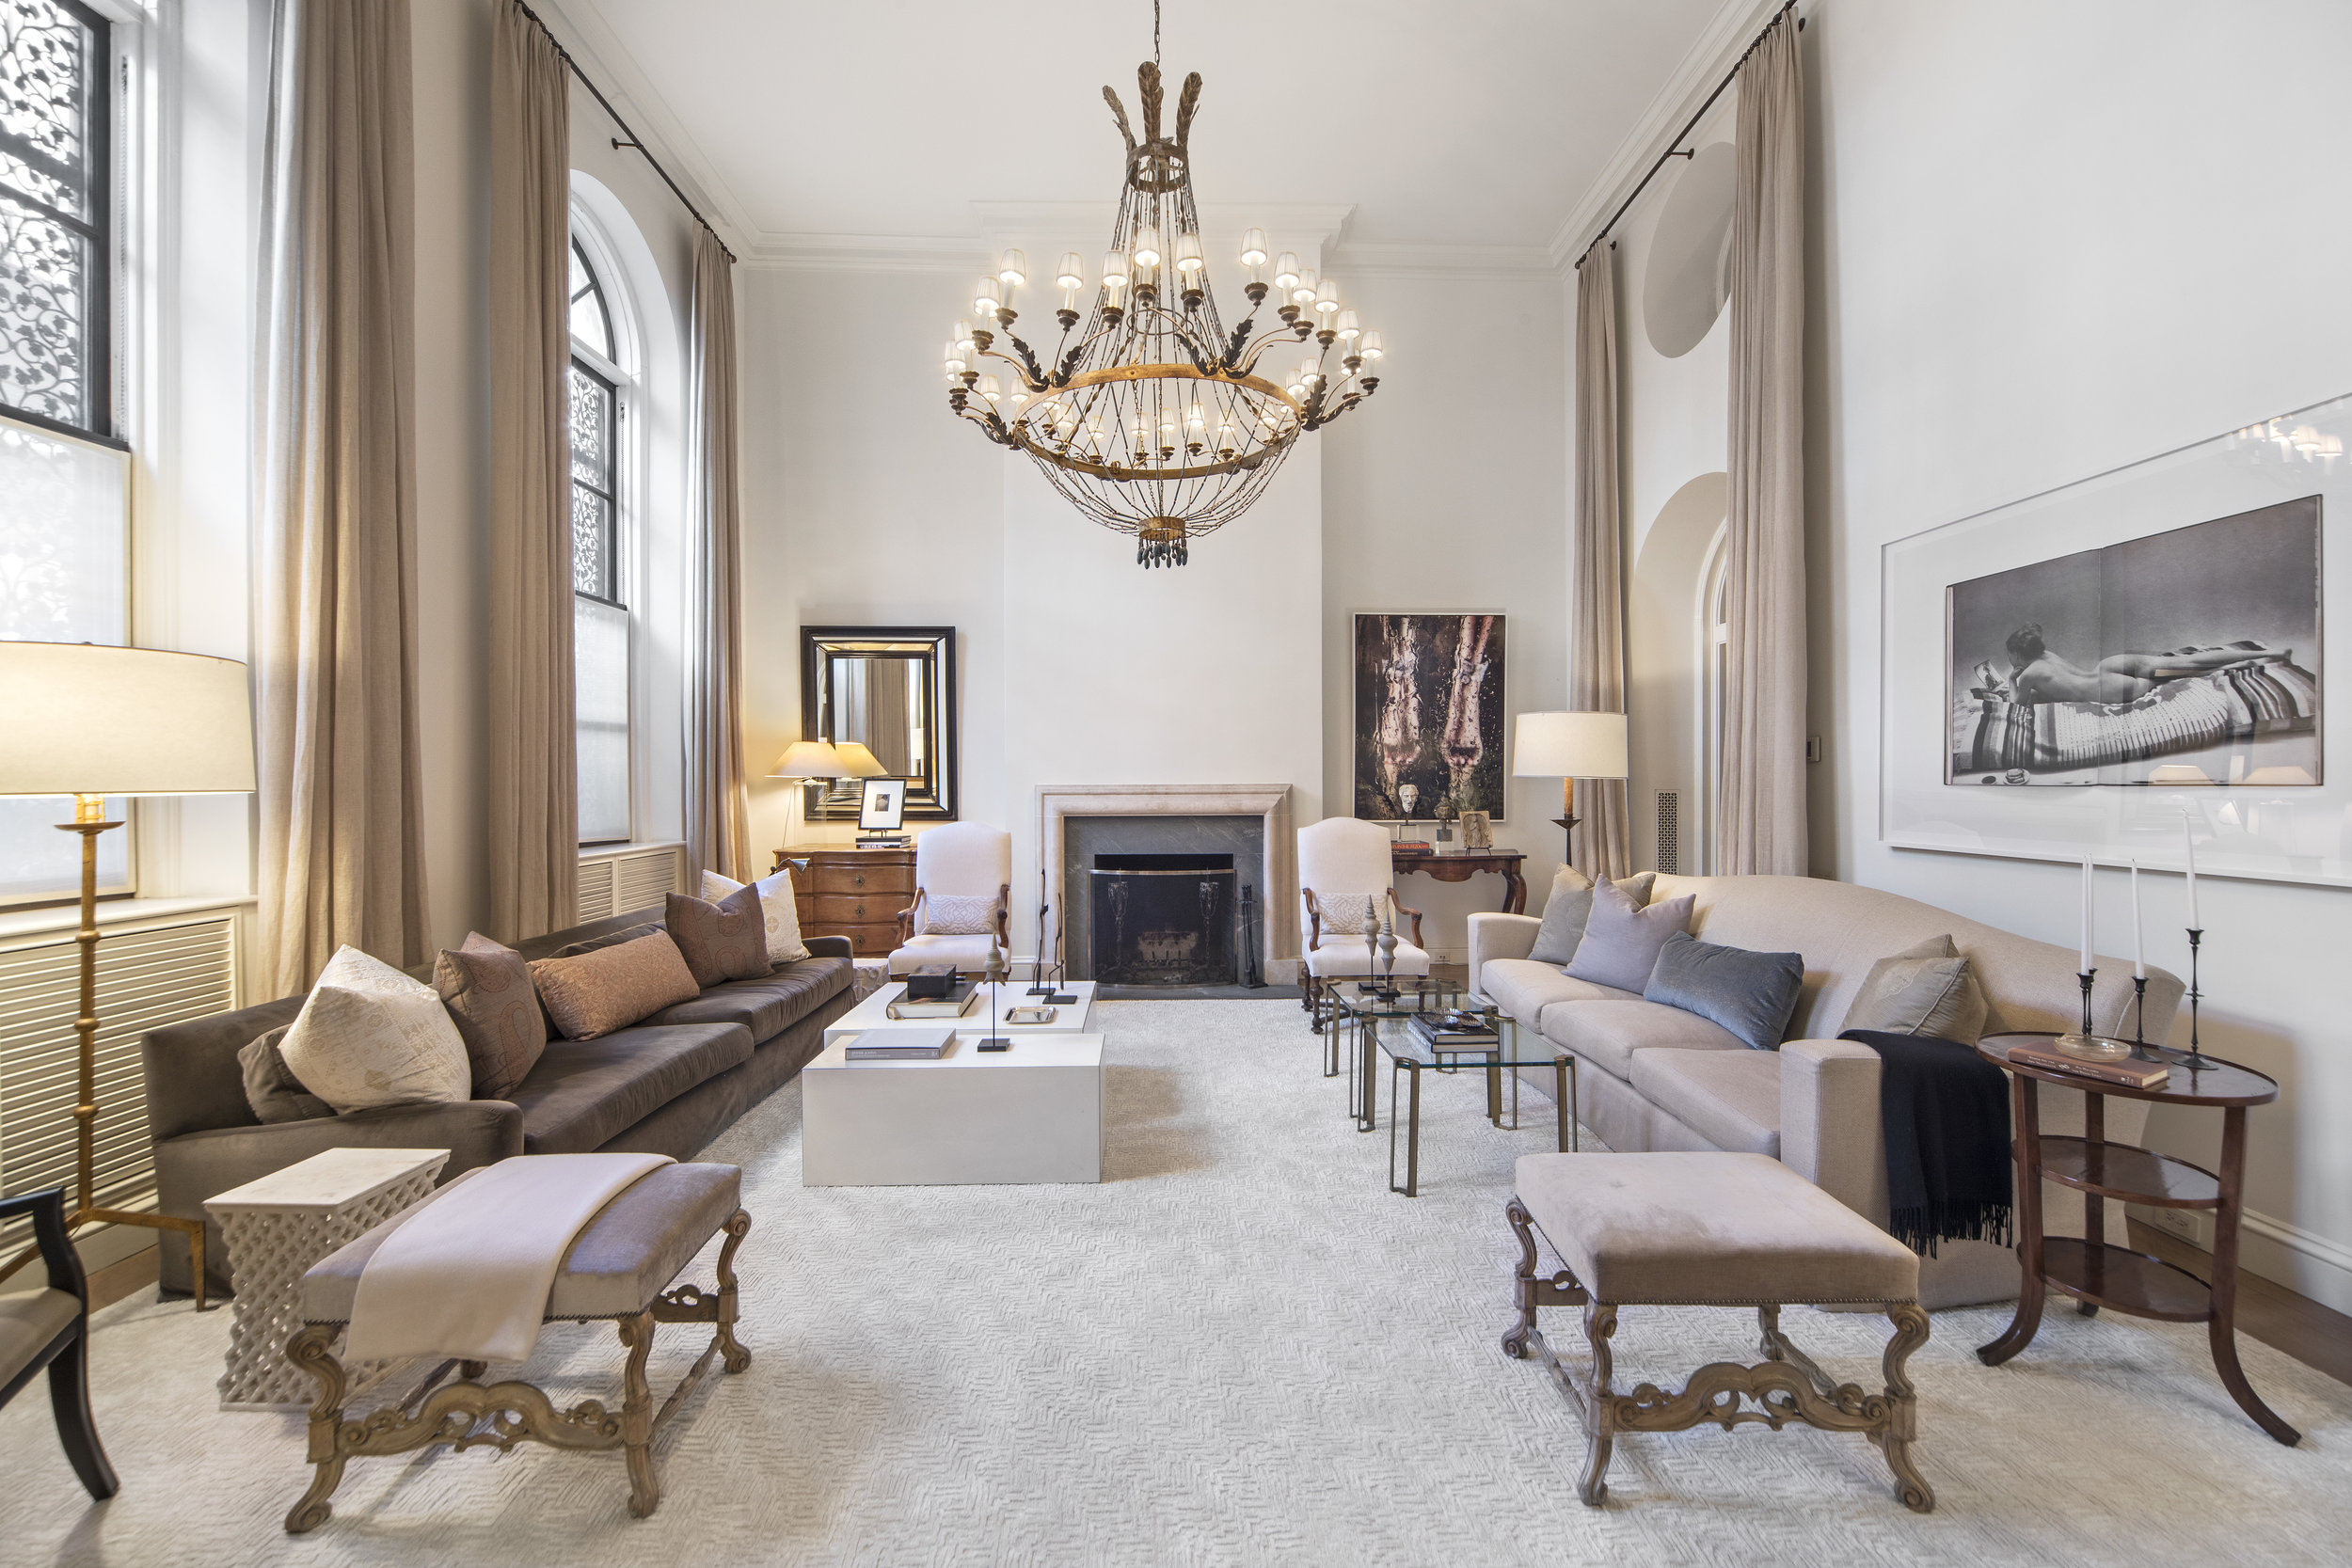 MW Studio: NYC Luxury Real Estate Photography, Interiors and